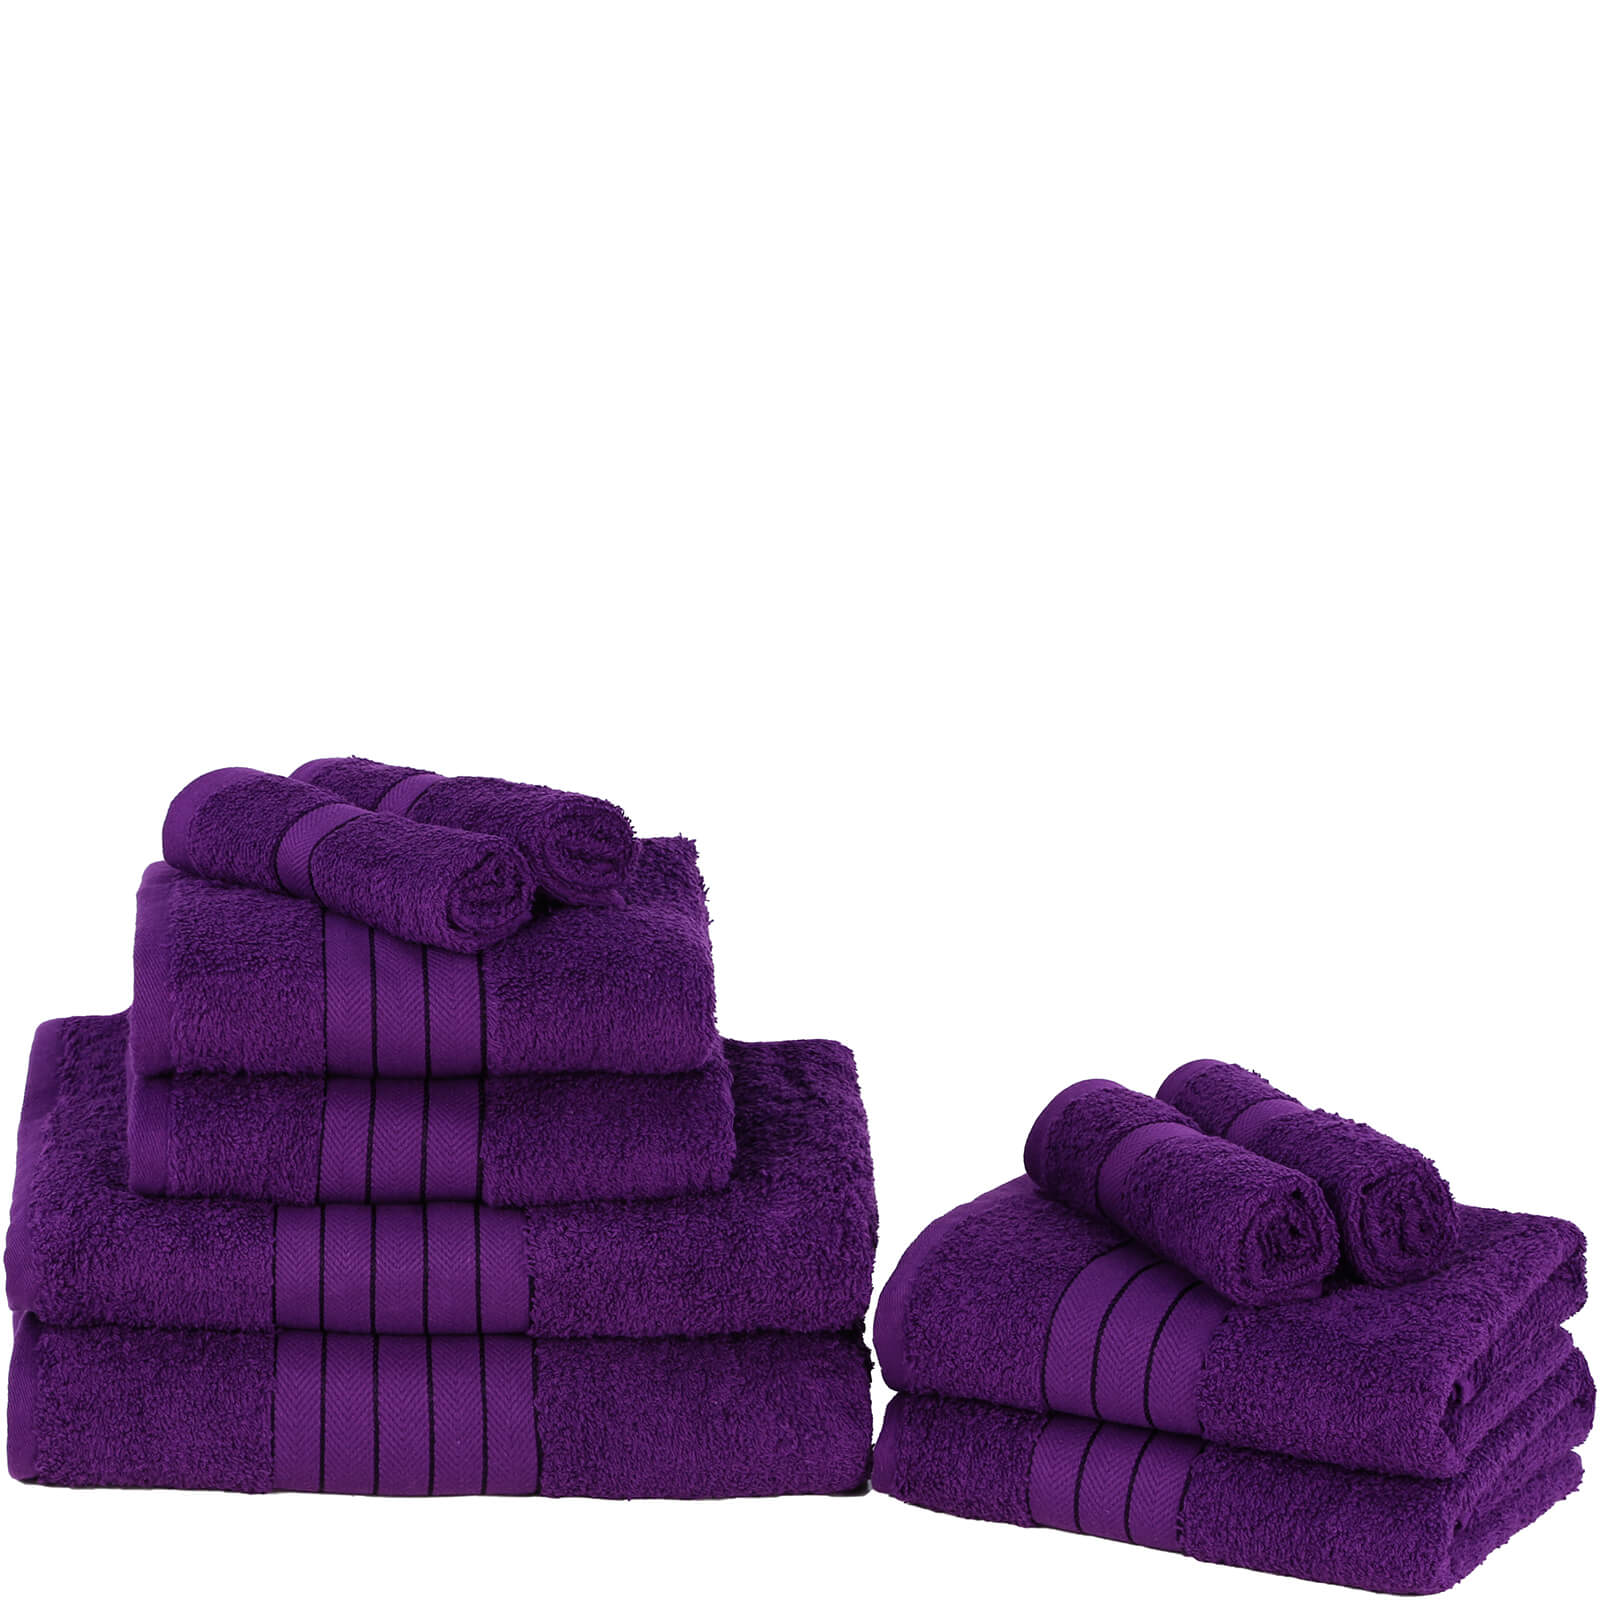 Highams 100% Egyptian Cotton 10 Piece Towel Bale (500 gsm) - Grape